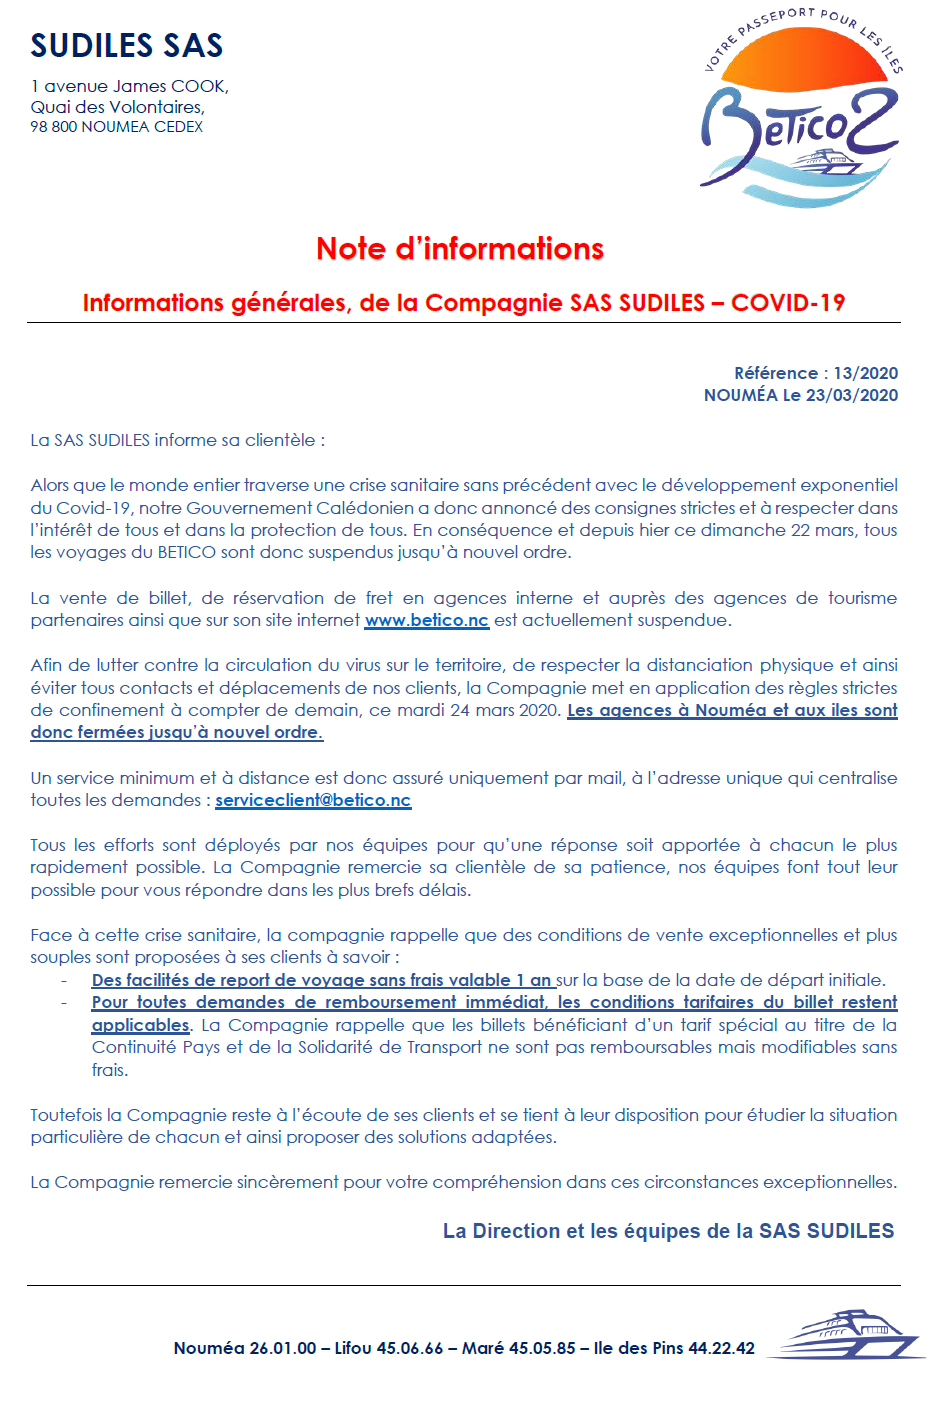 Note d'informations - Covid 19